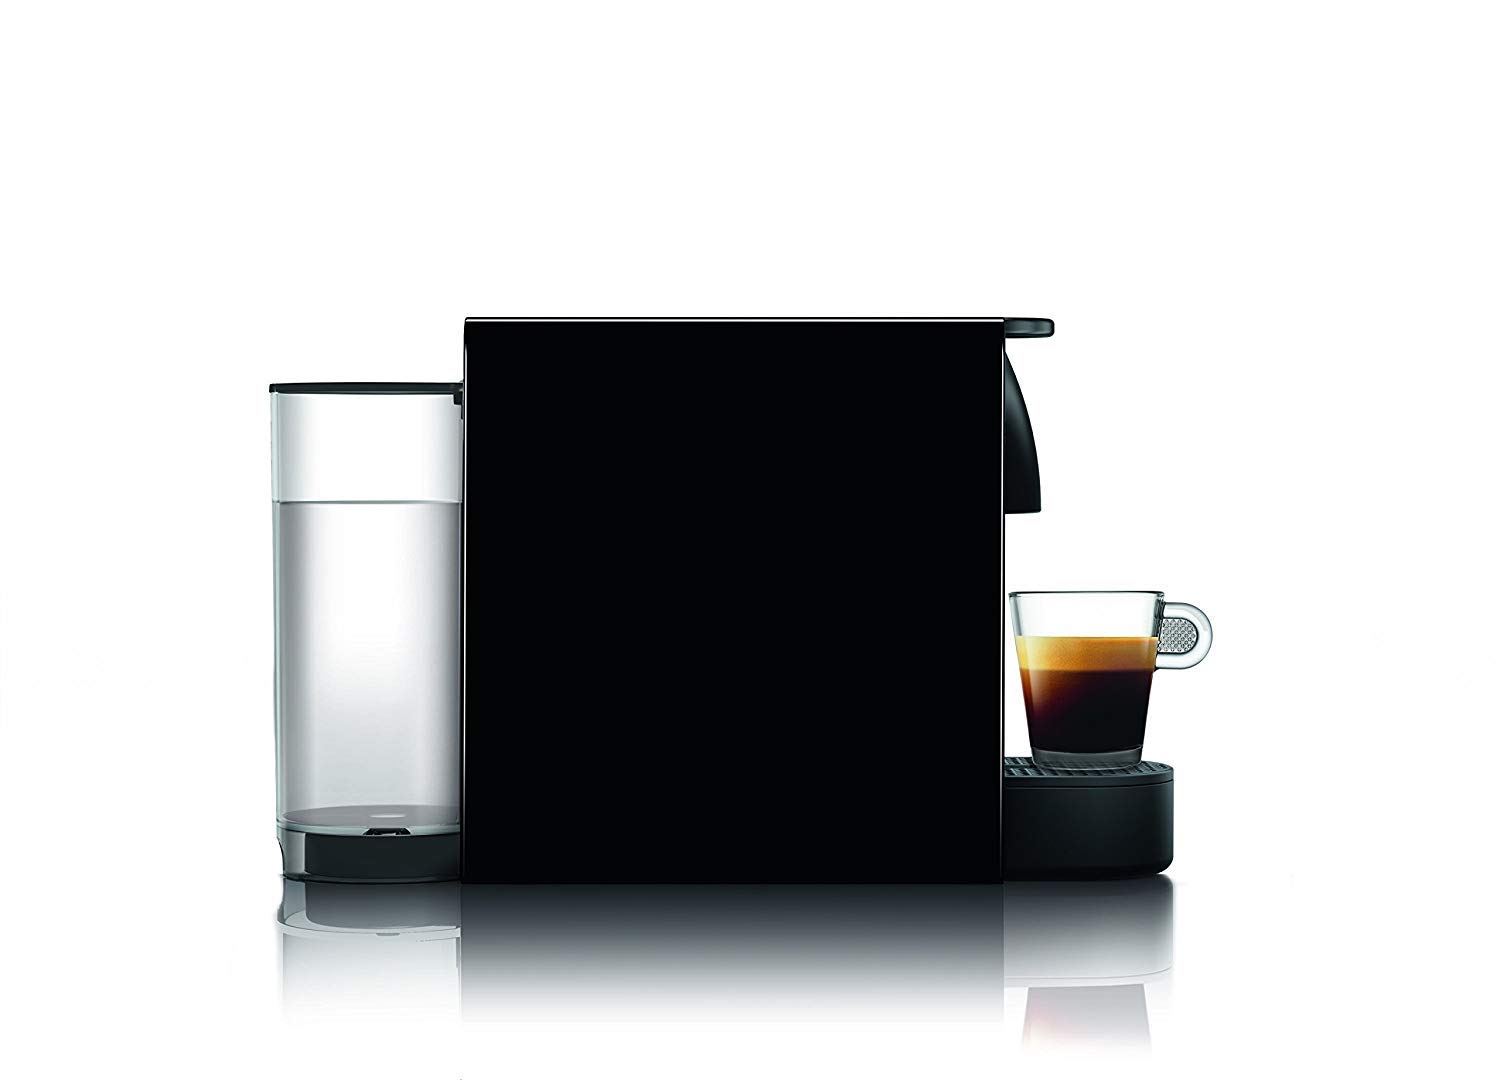 Nespresso VertuoLine Coffee and Espresso Maker with Aeroccino Plus Milk Frother, Black (Renewed) by Nestle Nespresso (Image #5)